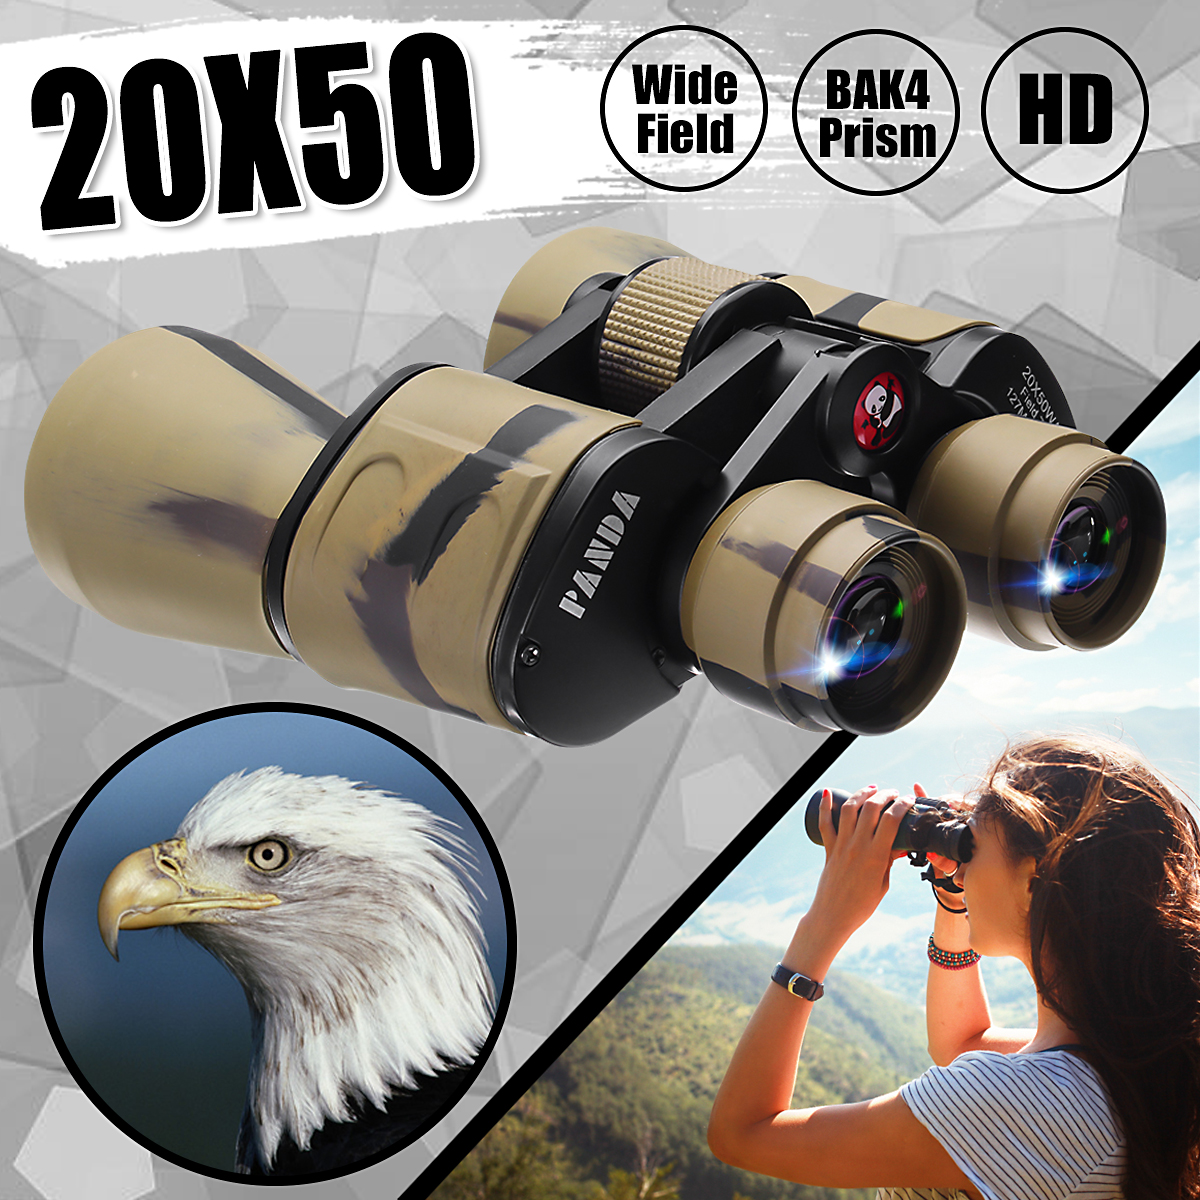 Magnification 20x-50x 50mm Camouflage Binoculars Kit HD Zoom Low Night Vision Water Resistant Waterproof Outdoor Sports